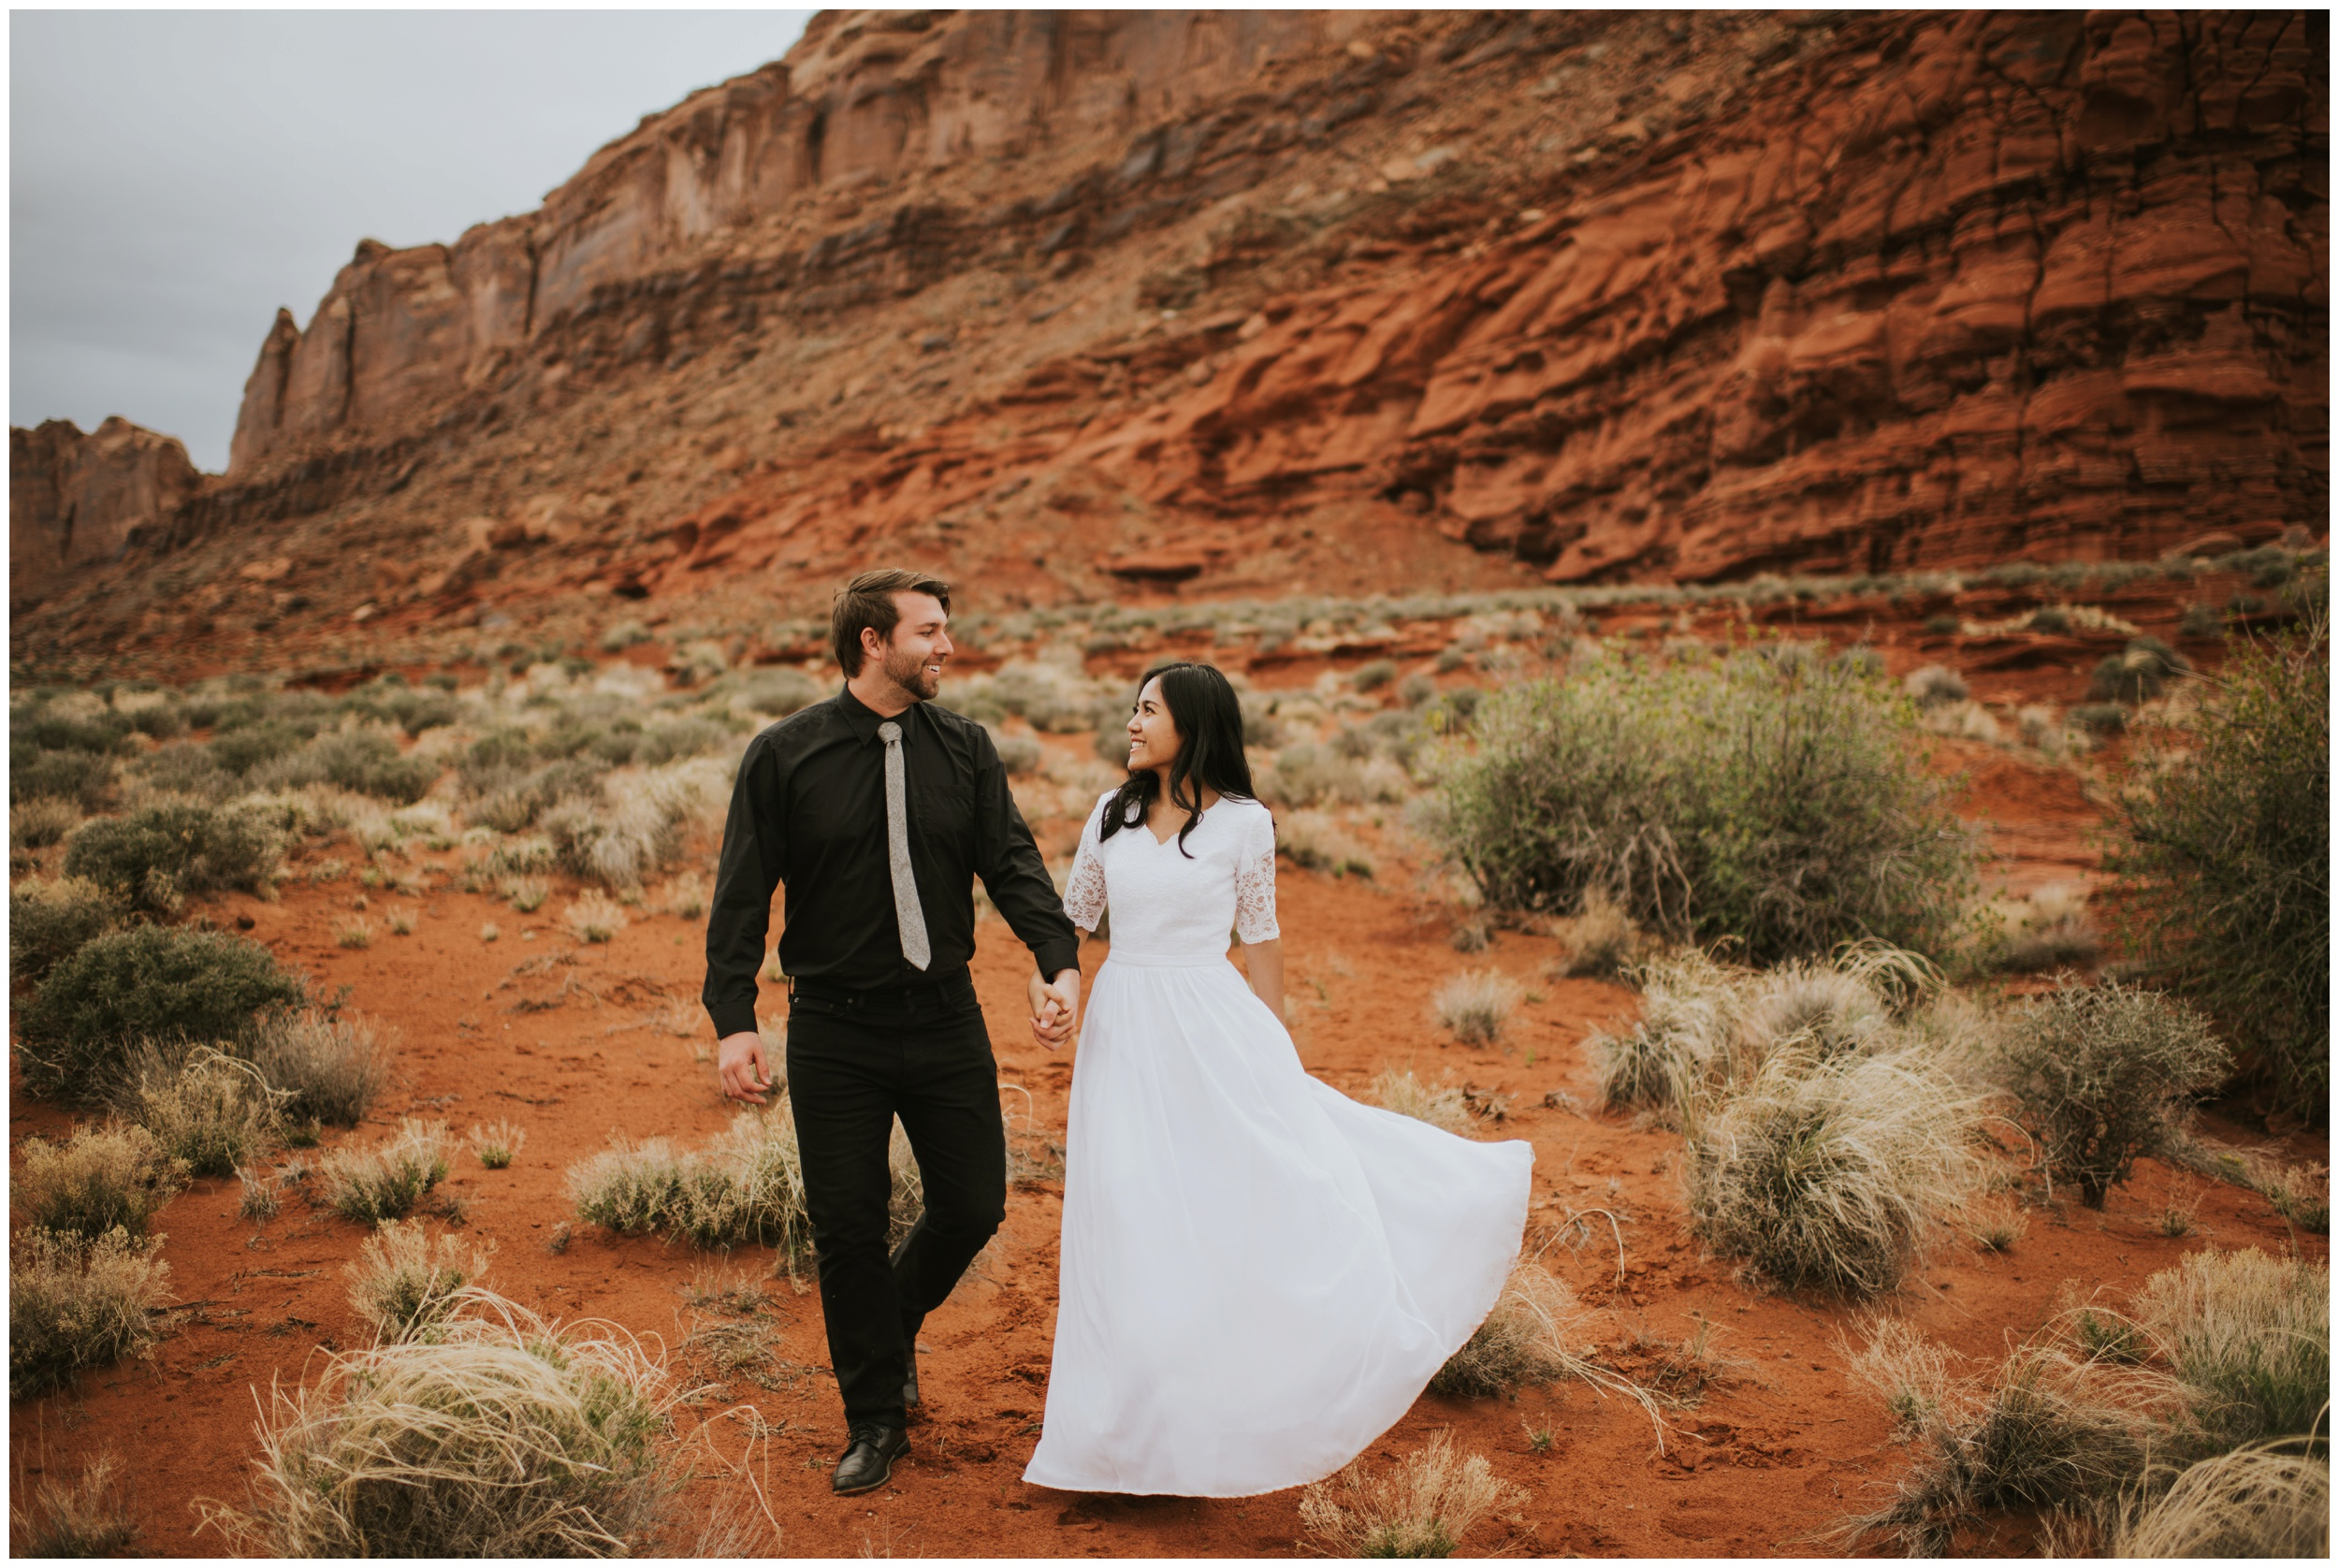 Couple holding hands and looking at each other, destination elopement, candid photography |Moab Utah, Photographer www.riversandroadsphotography.com